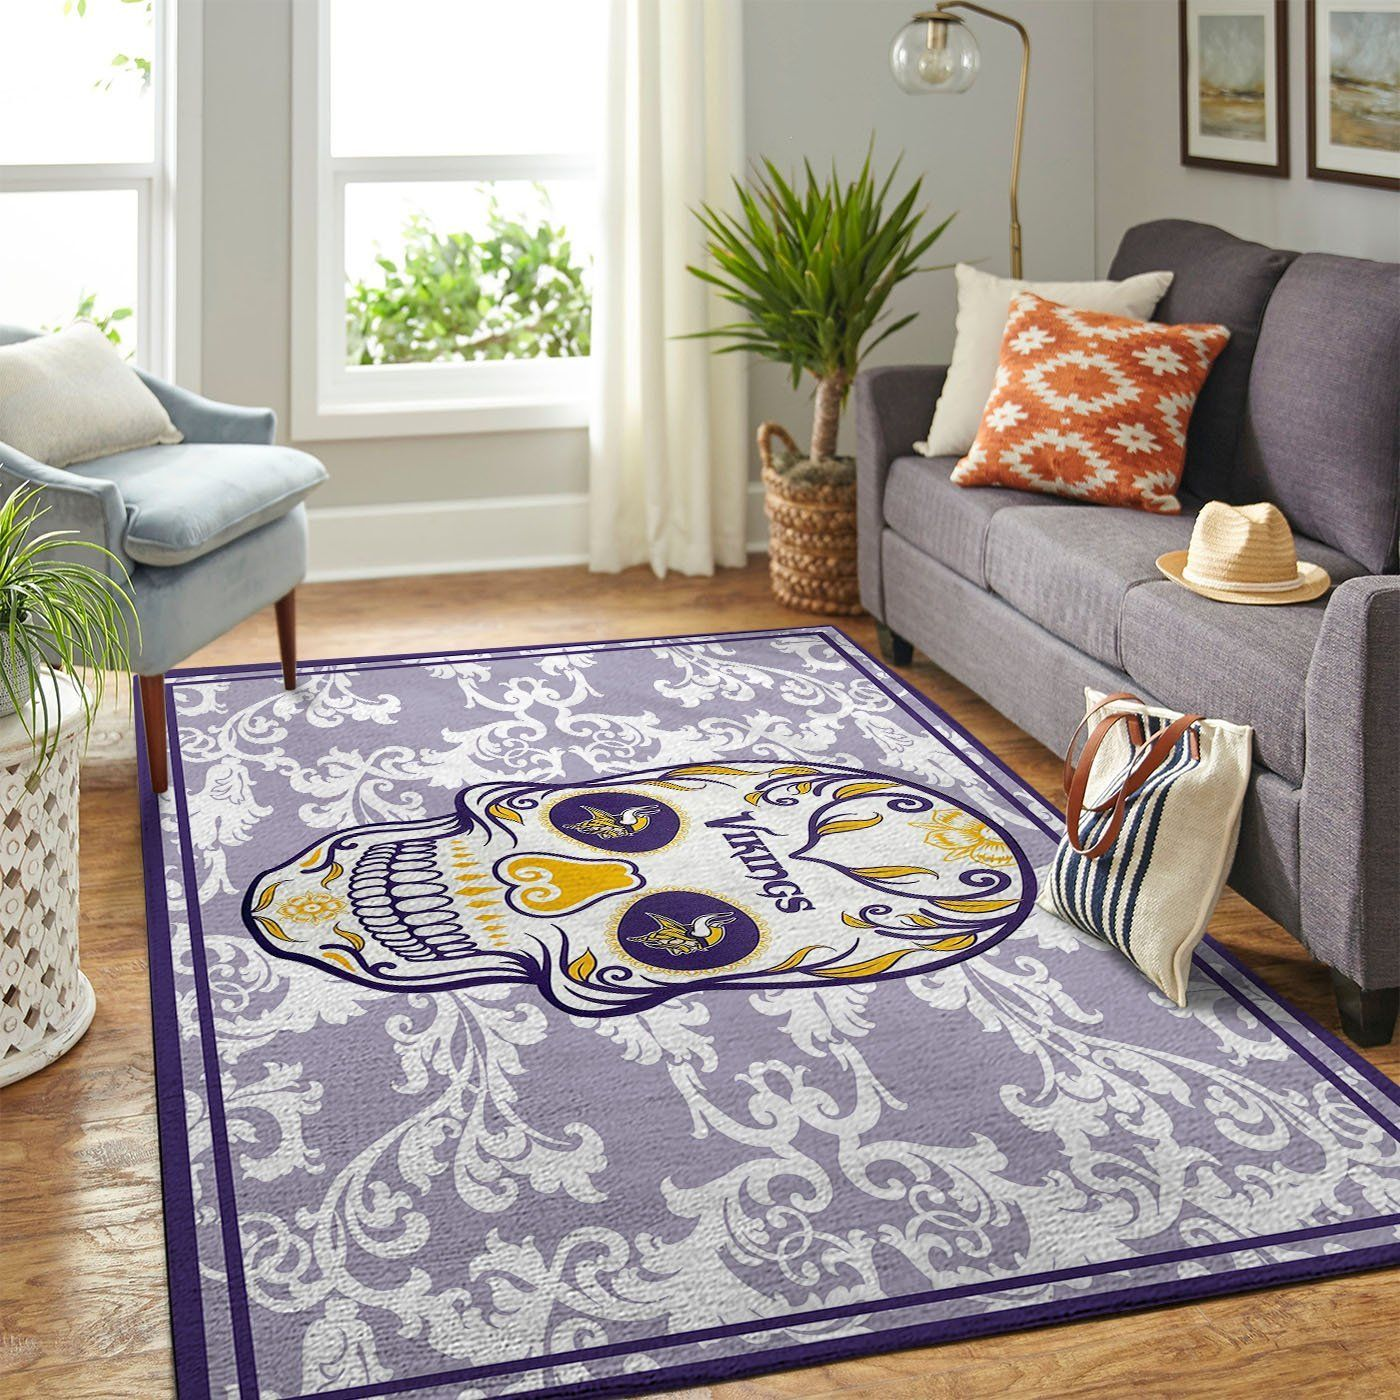 Amazon Minnesota Vikings Living Room Area No3959 Rug